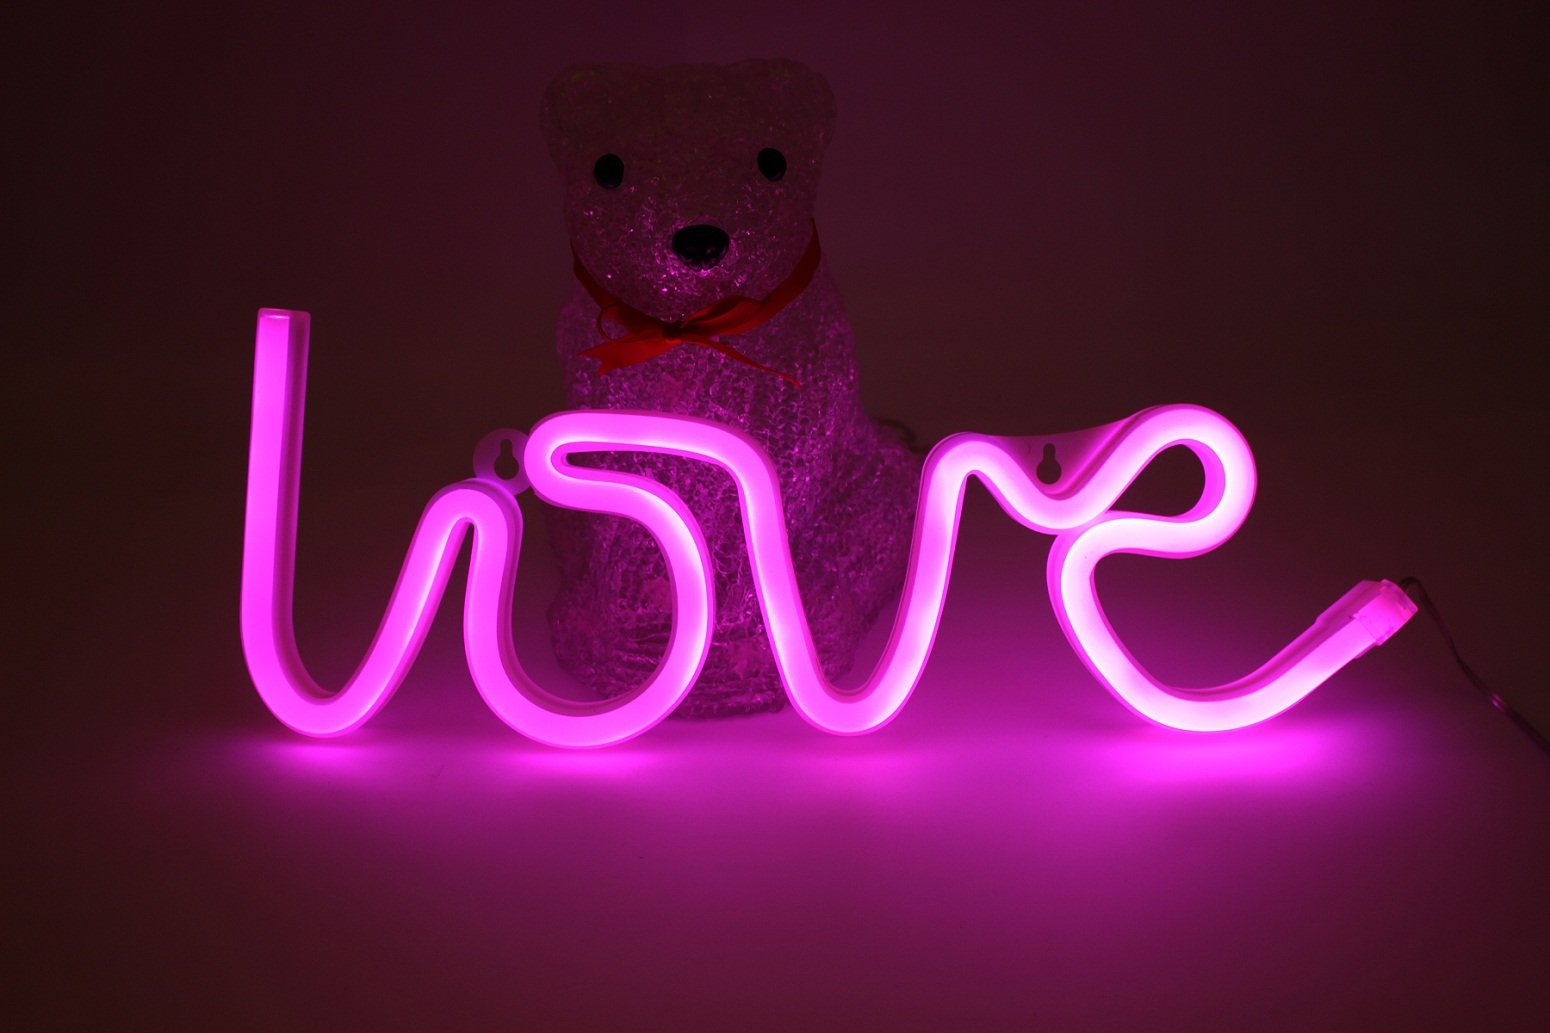 Pink Love Neon Signs LED Light 6×12 Inch USB or Battery Powered Decorative Lights For Teen Girls Bedroom Bar Pub Hotel Party Kids Home Dorm Aesthetic Room Wall Decor